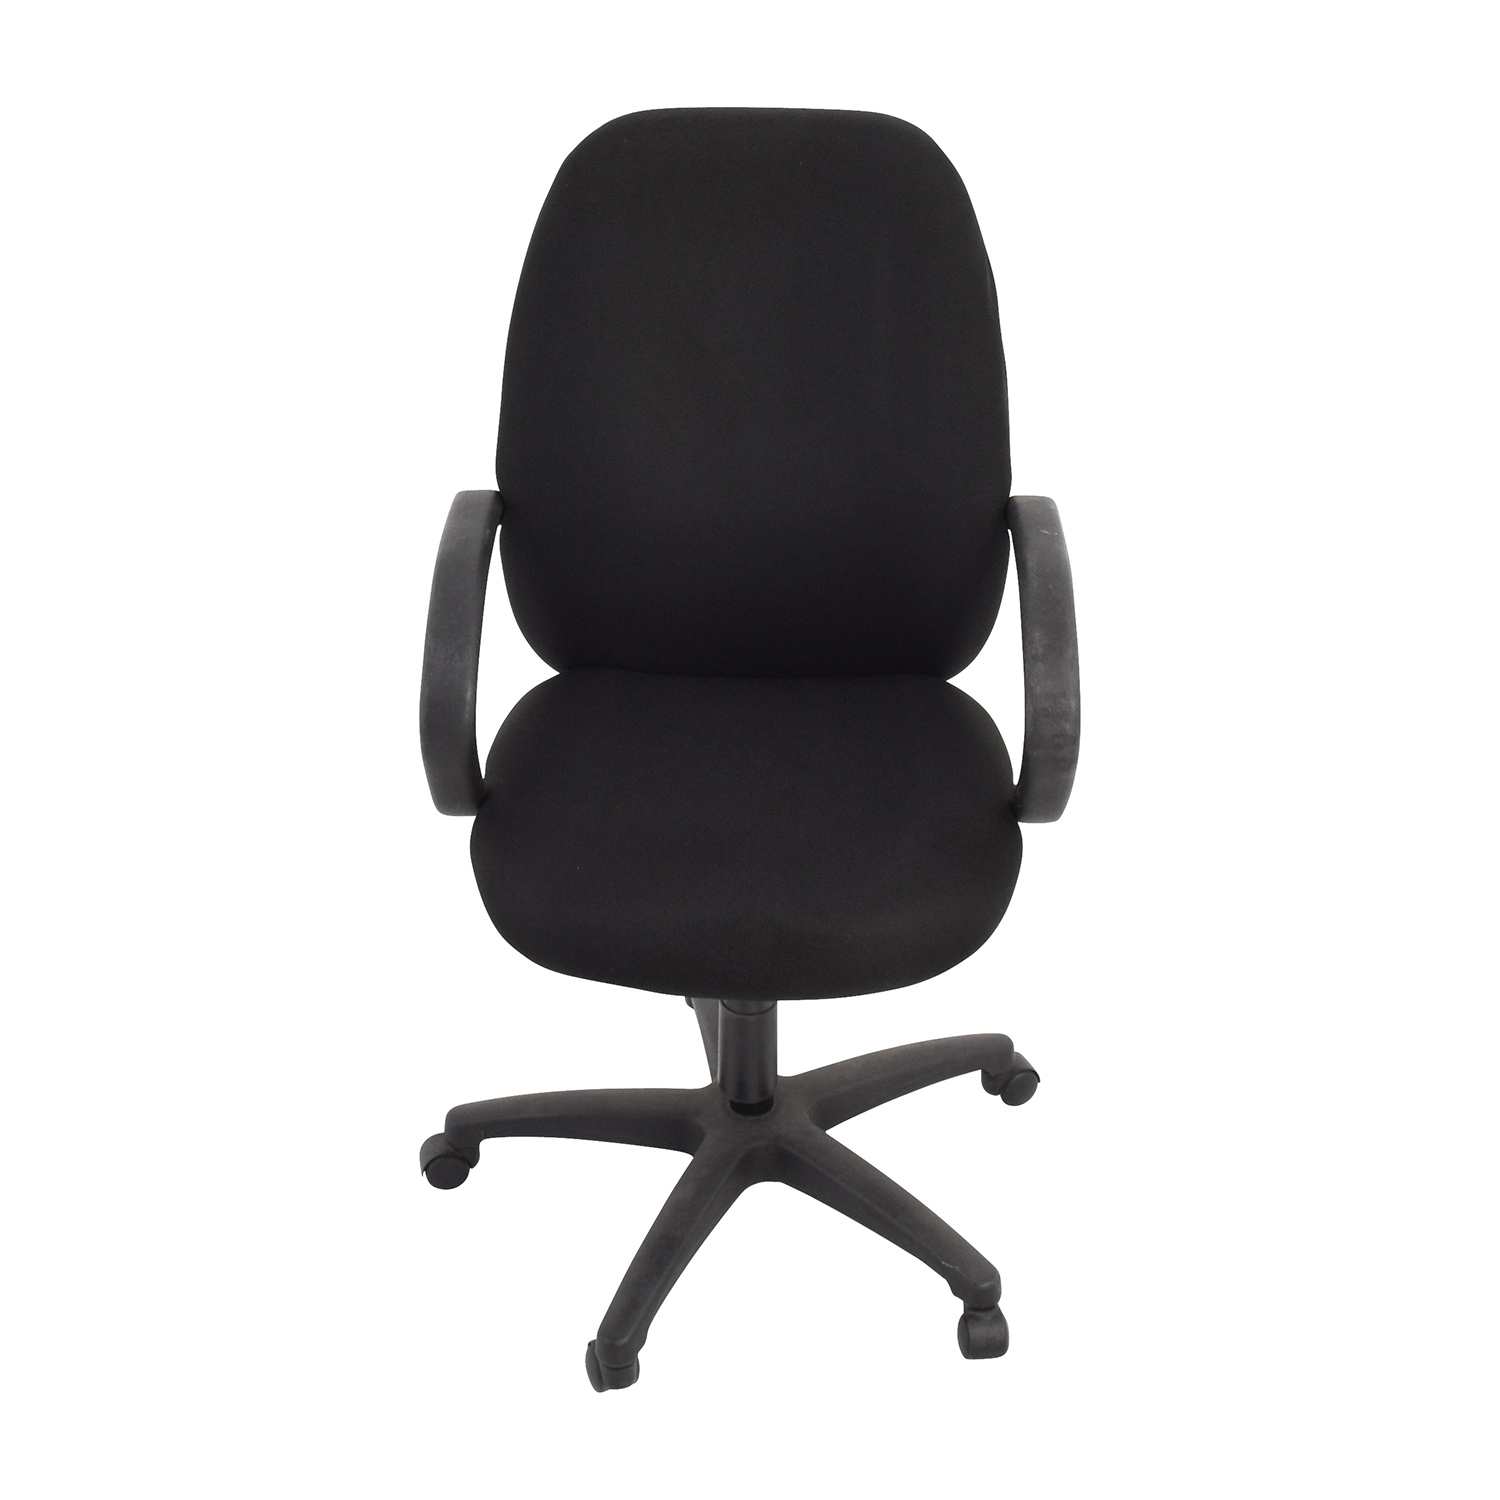 buy Black Swivel Office Chair online